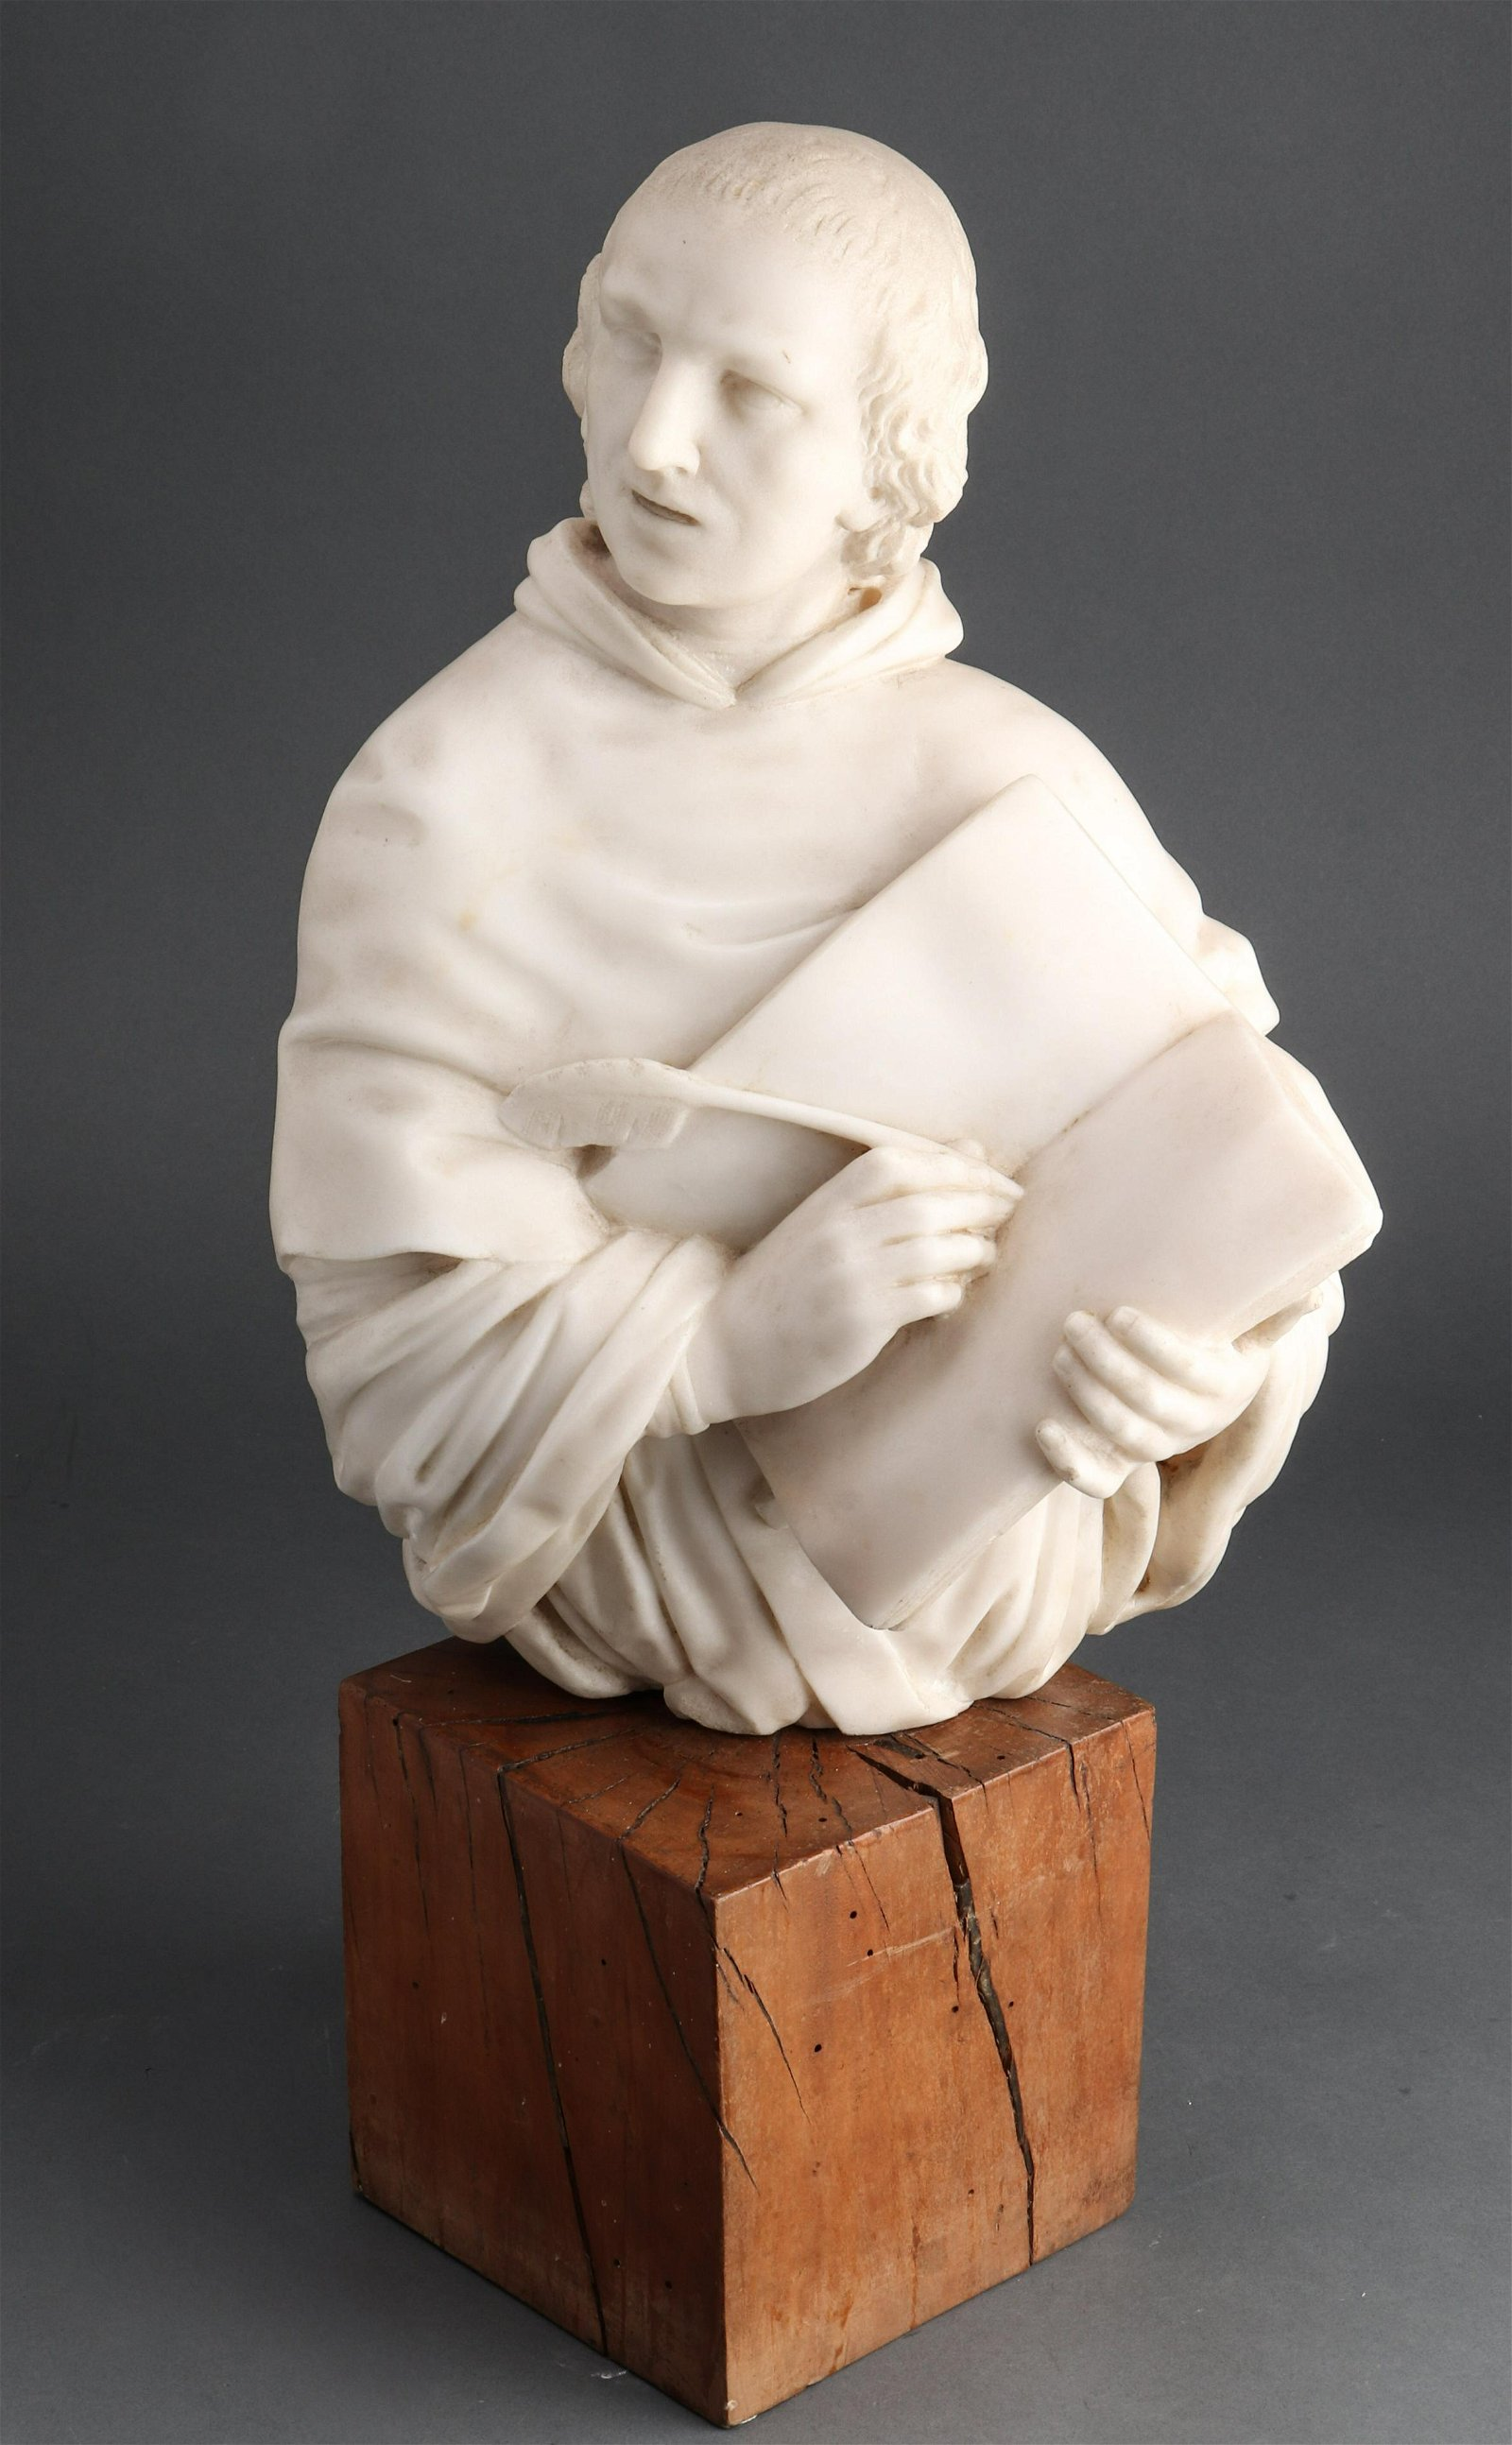 Carved Marble Bust of Religious Figure